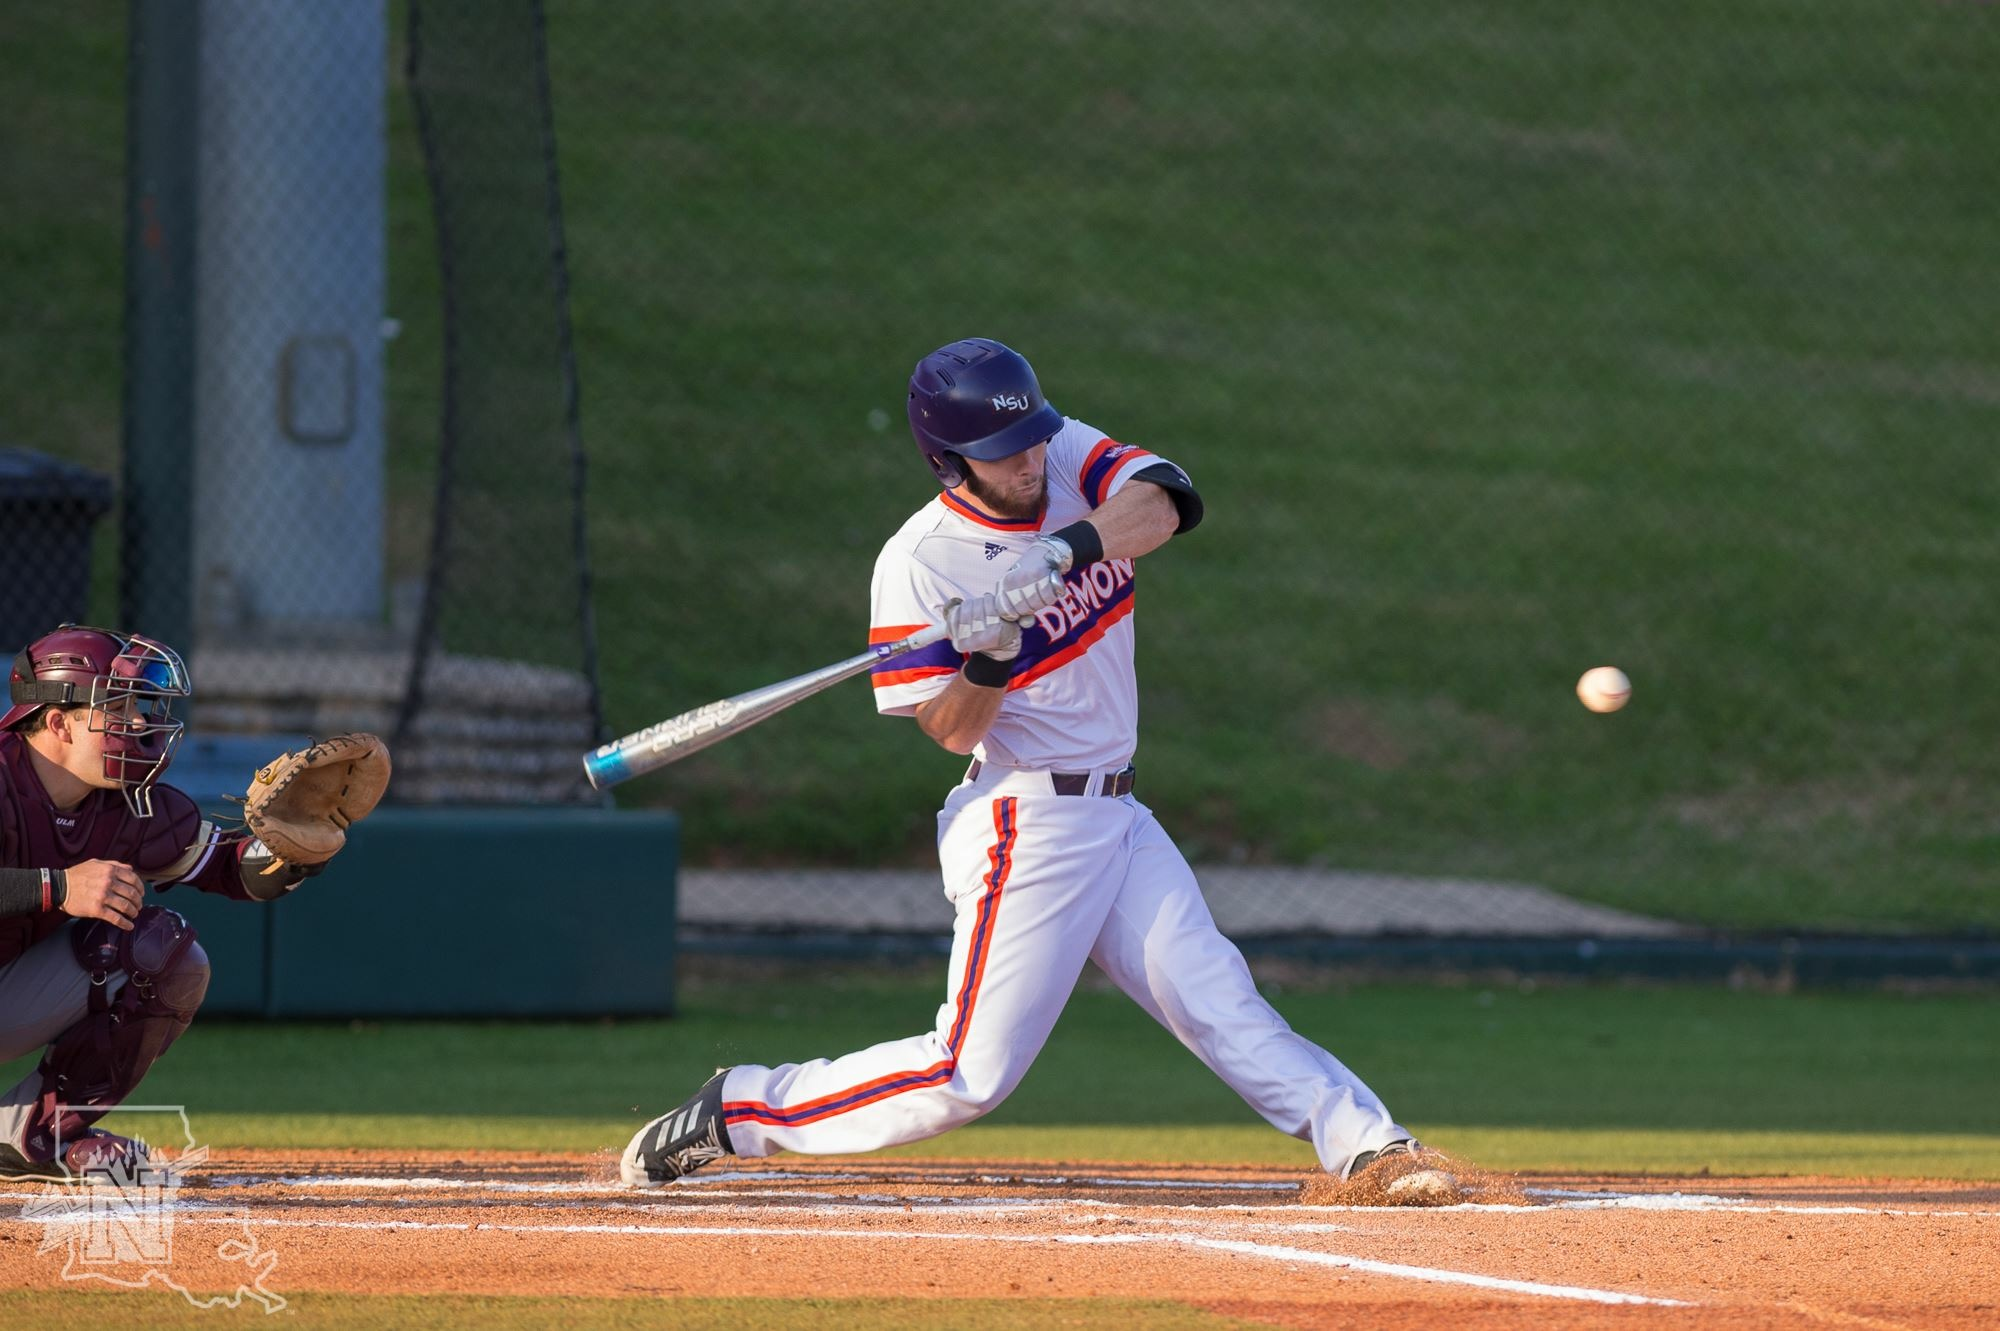 David Fry, Catcher drafted by the Milwaukee Brewers